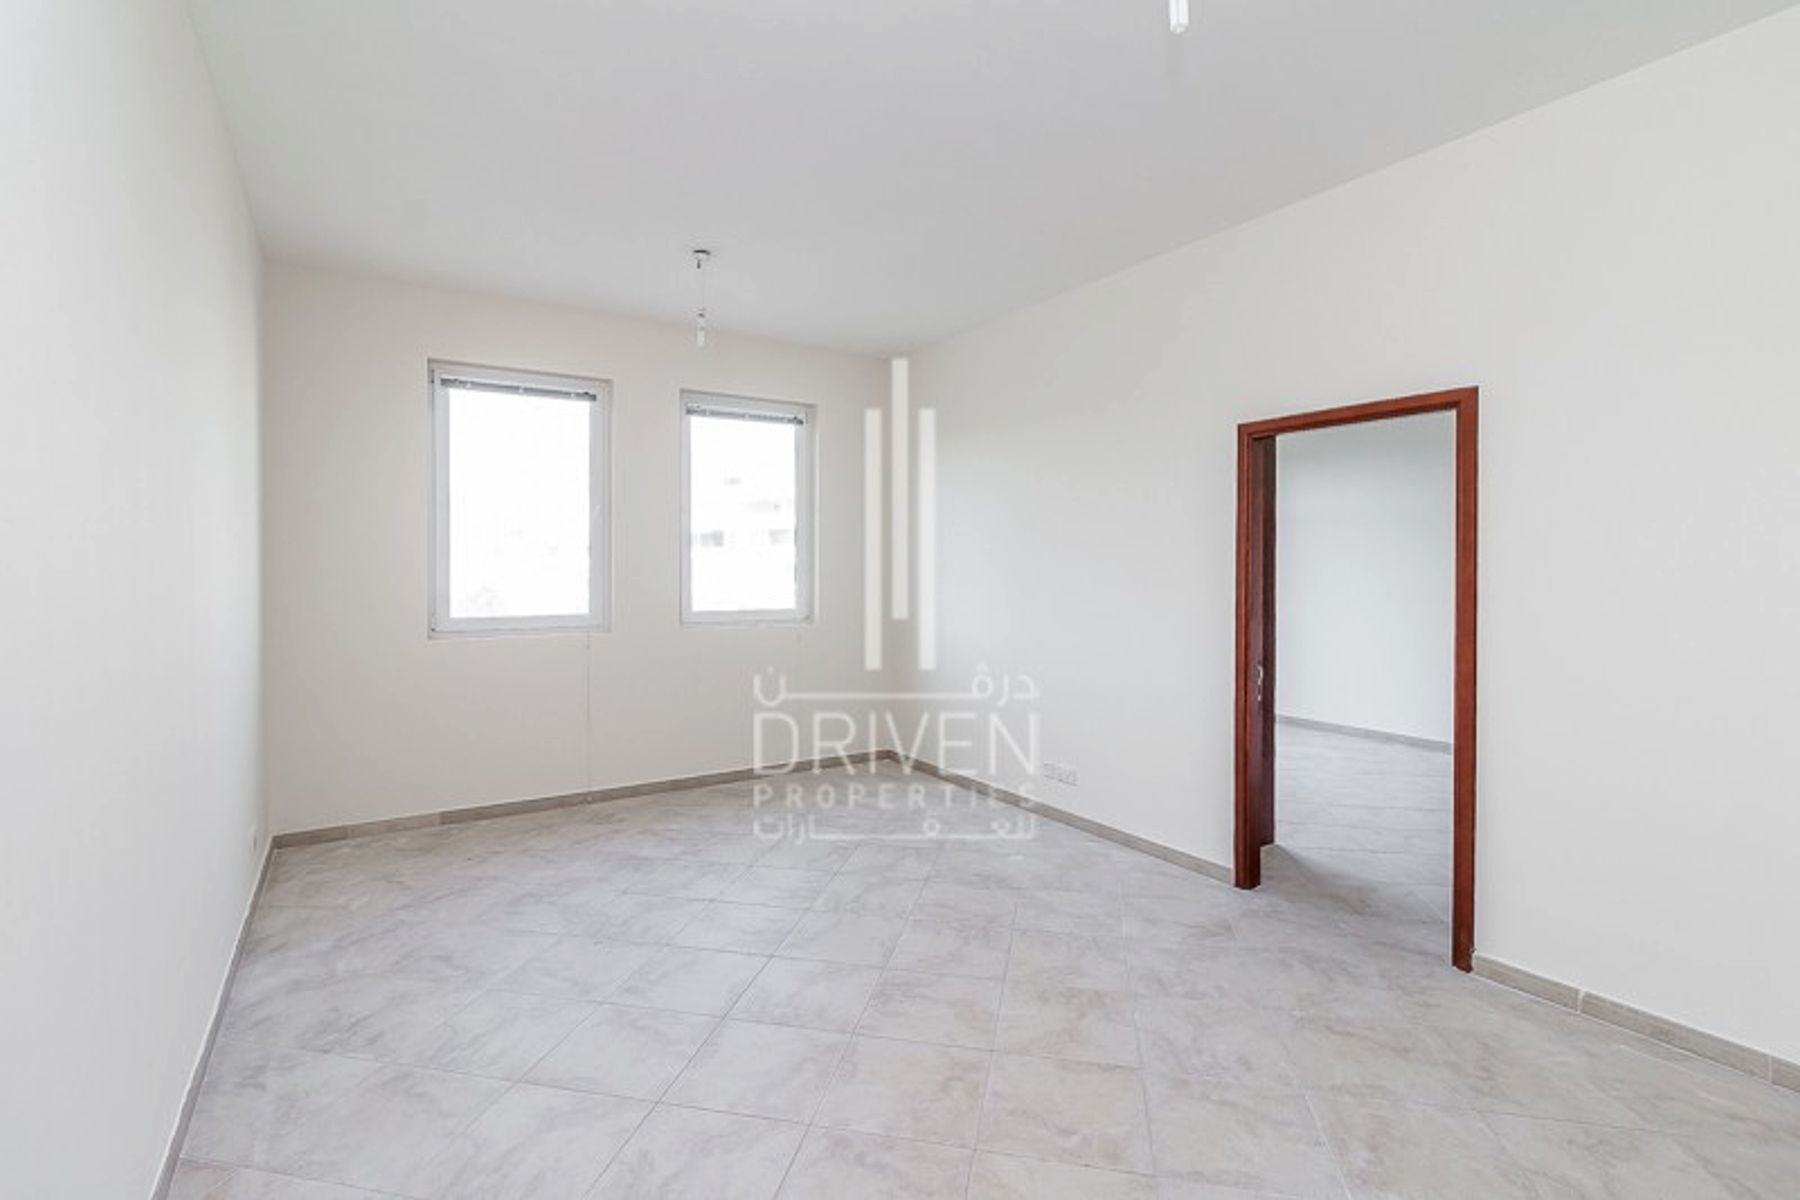 Well-kept and Spacious 1BR Apt for Sale